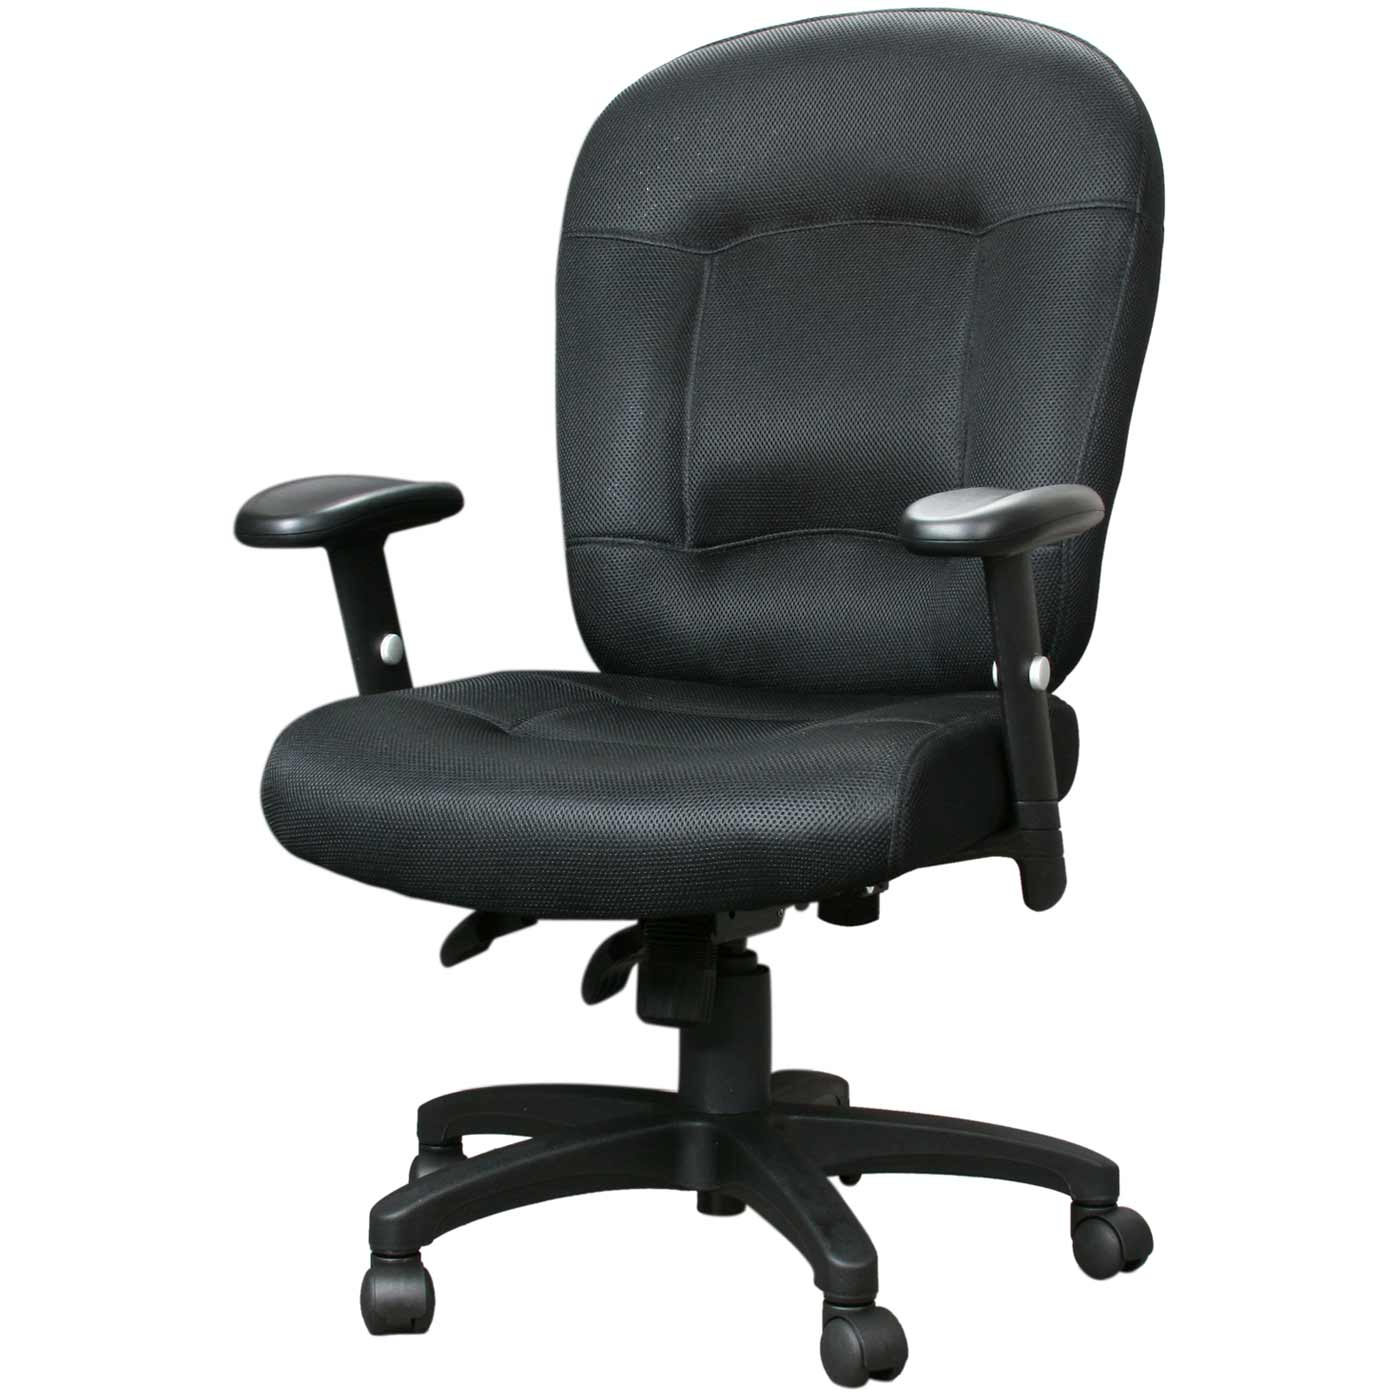 ergonomics desk chair small outside table and 2 chairs executive ergonomic for your pride comfort